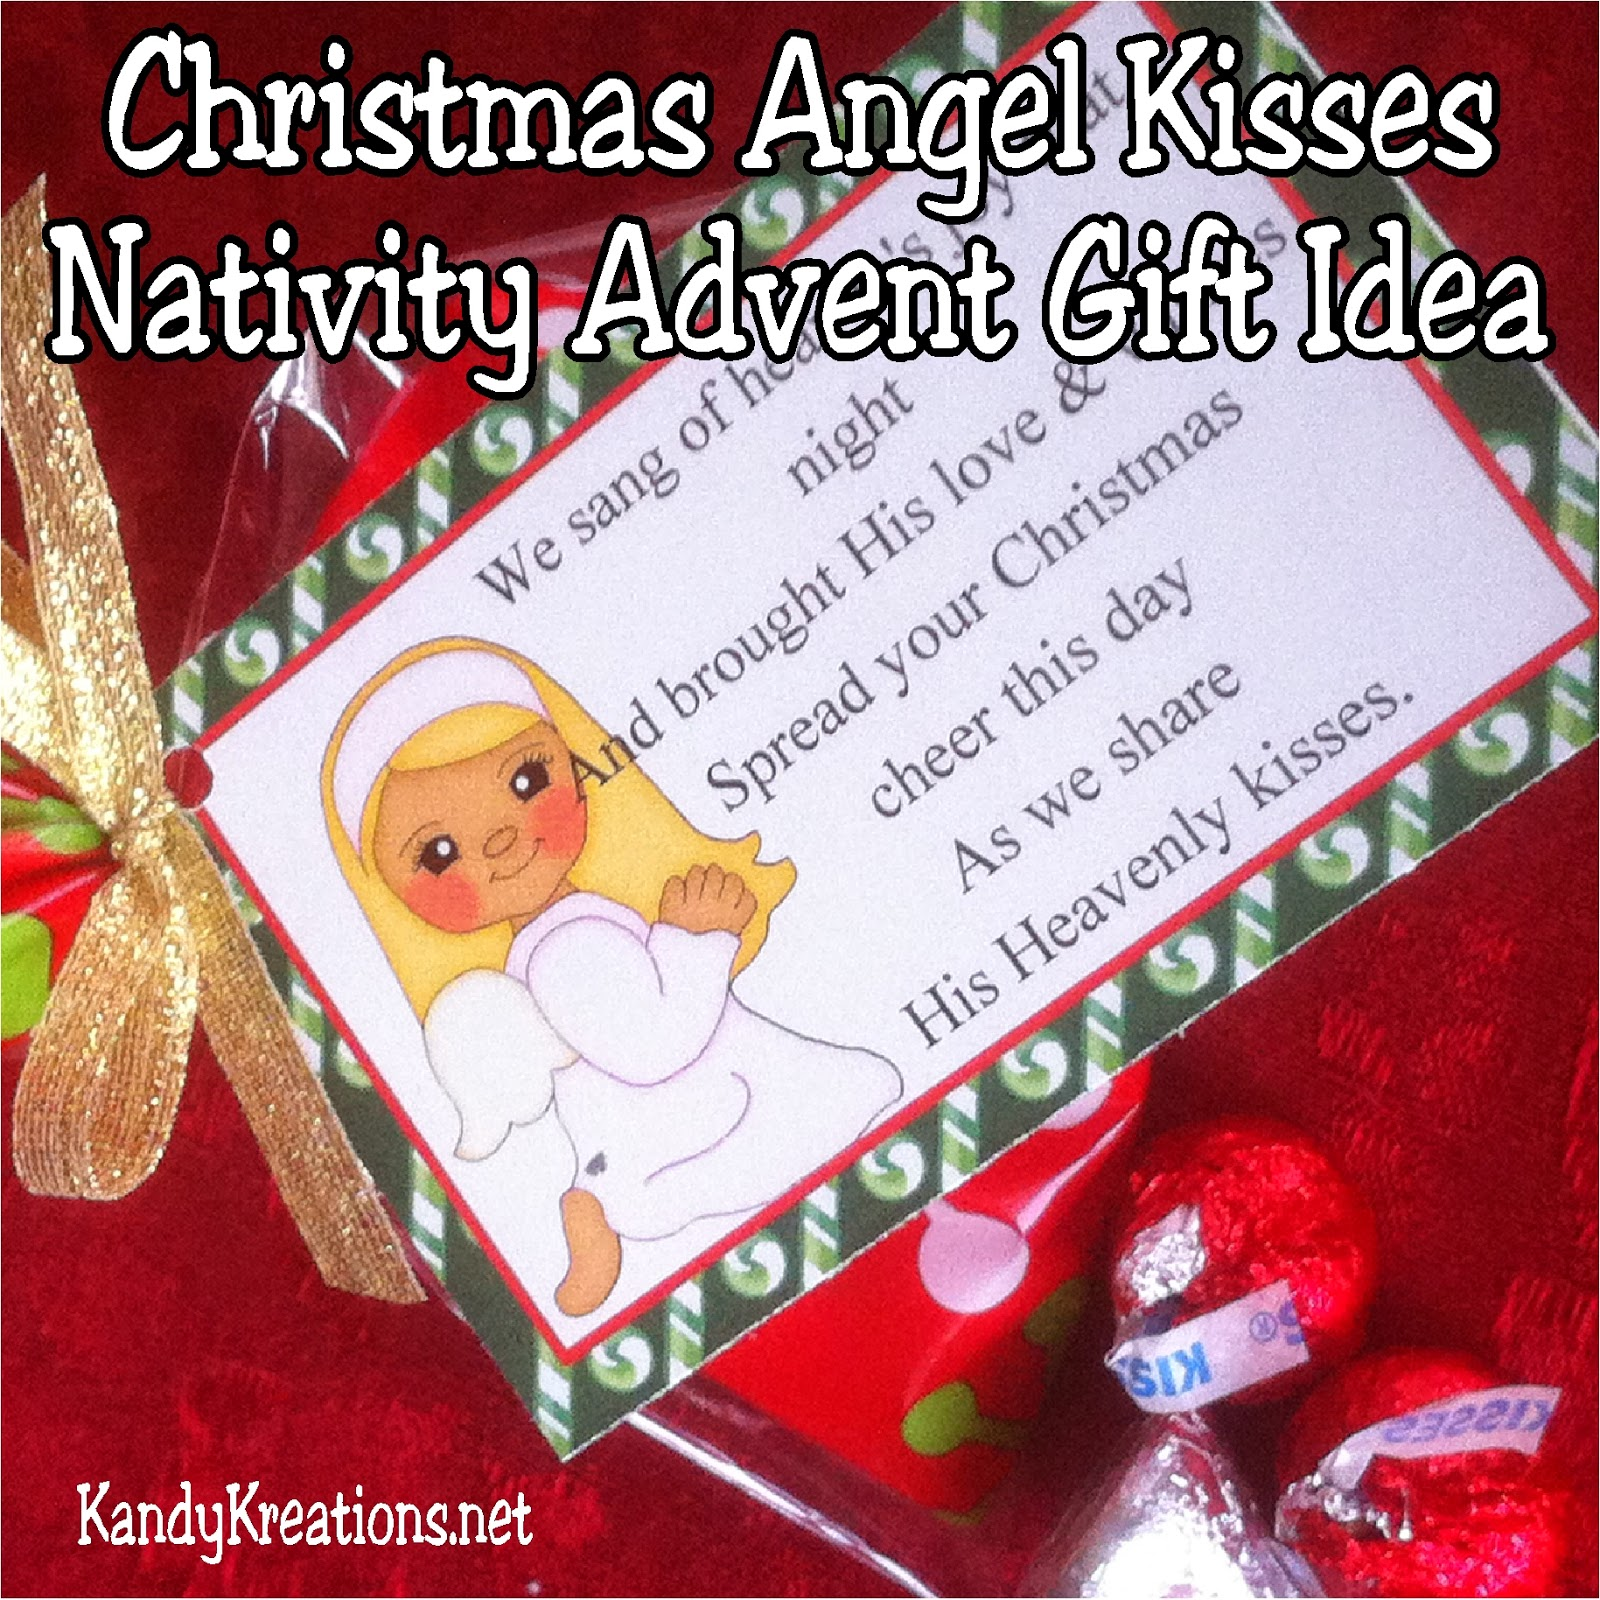 Looking for a great Christmas gift idea for friends and neighbors? This Nativity Advent gift idea has 12 days of sweet treats, poems and gifts to bring Christ into Christmas in a fun way. Day nine has a Christmas angel bringing heavenly kisses from on high. #christmas #advent #christmasangel #countdown #bagtopper #diypartymomblog